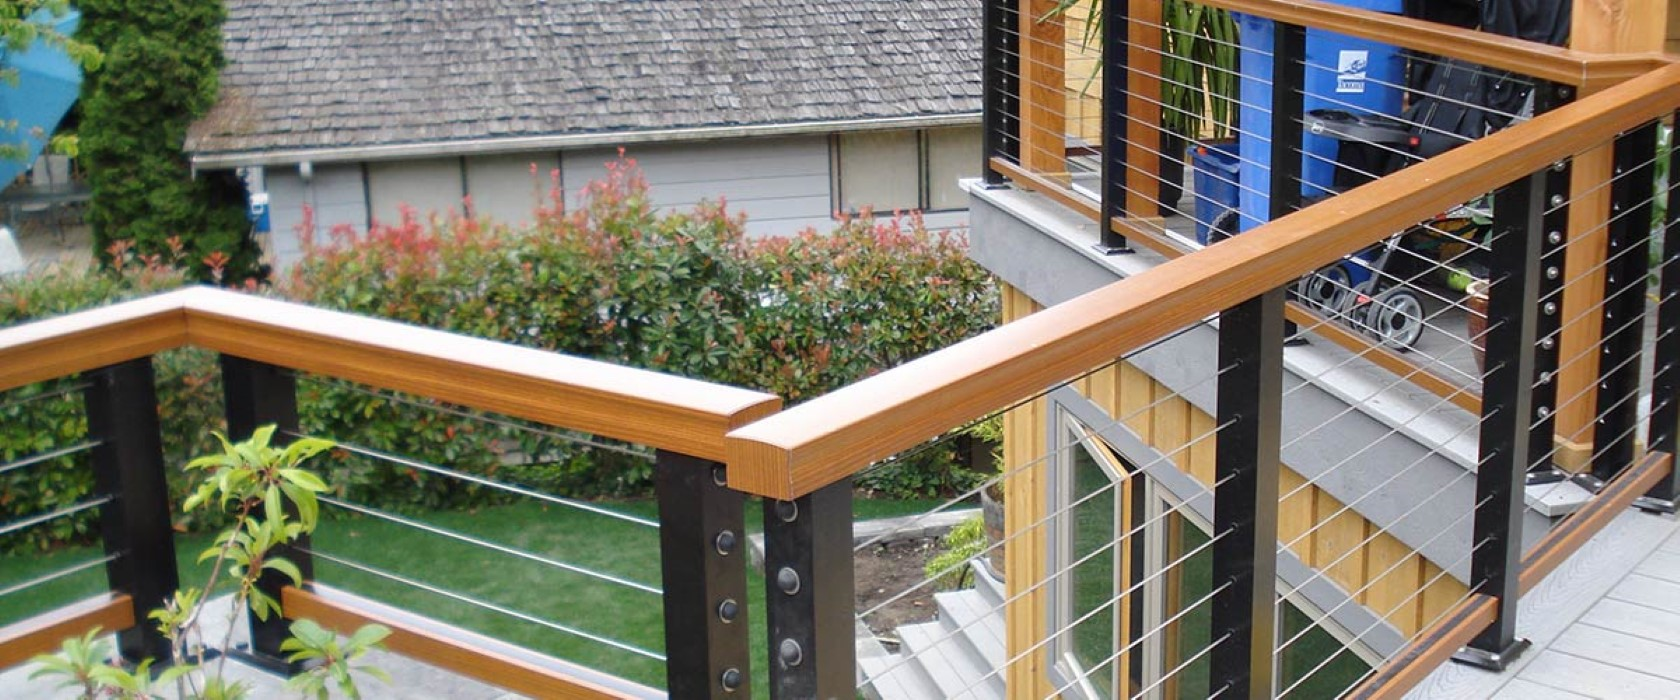 Stainless Steel Cable Railing | CrystaLite, Inc